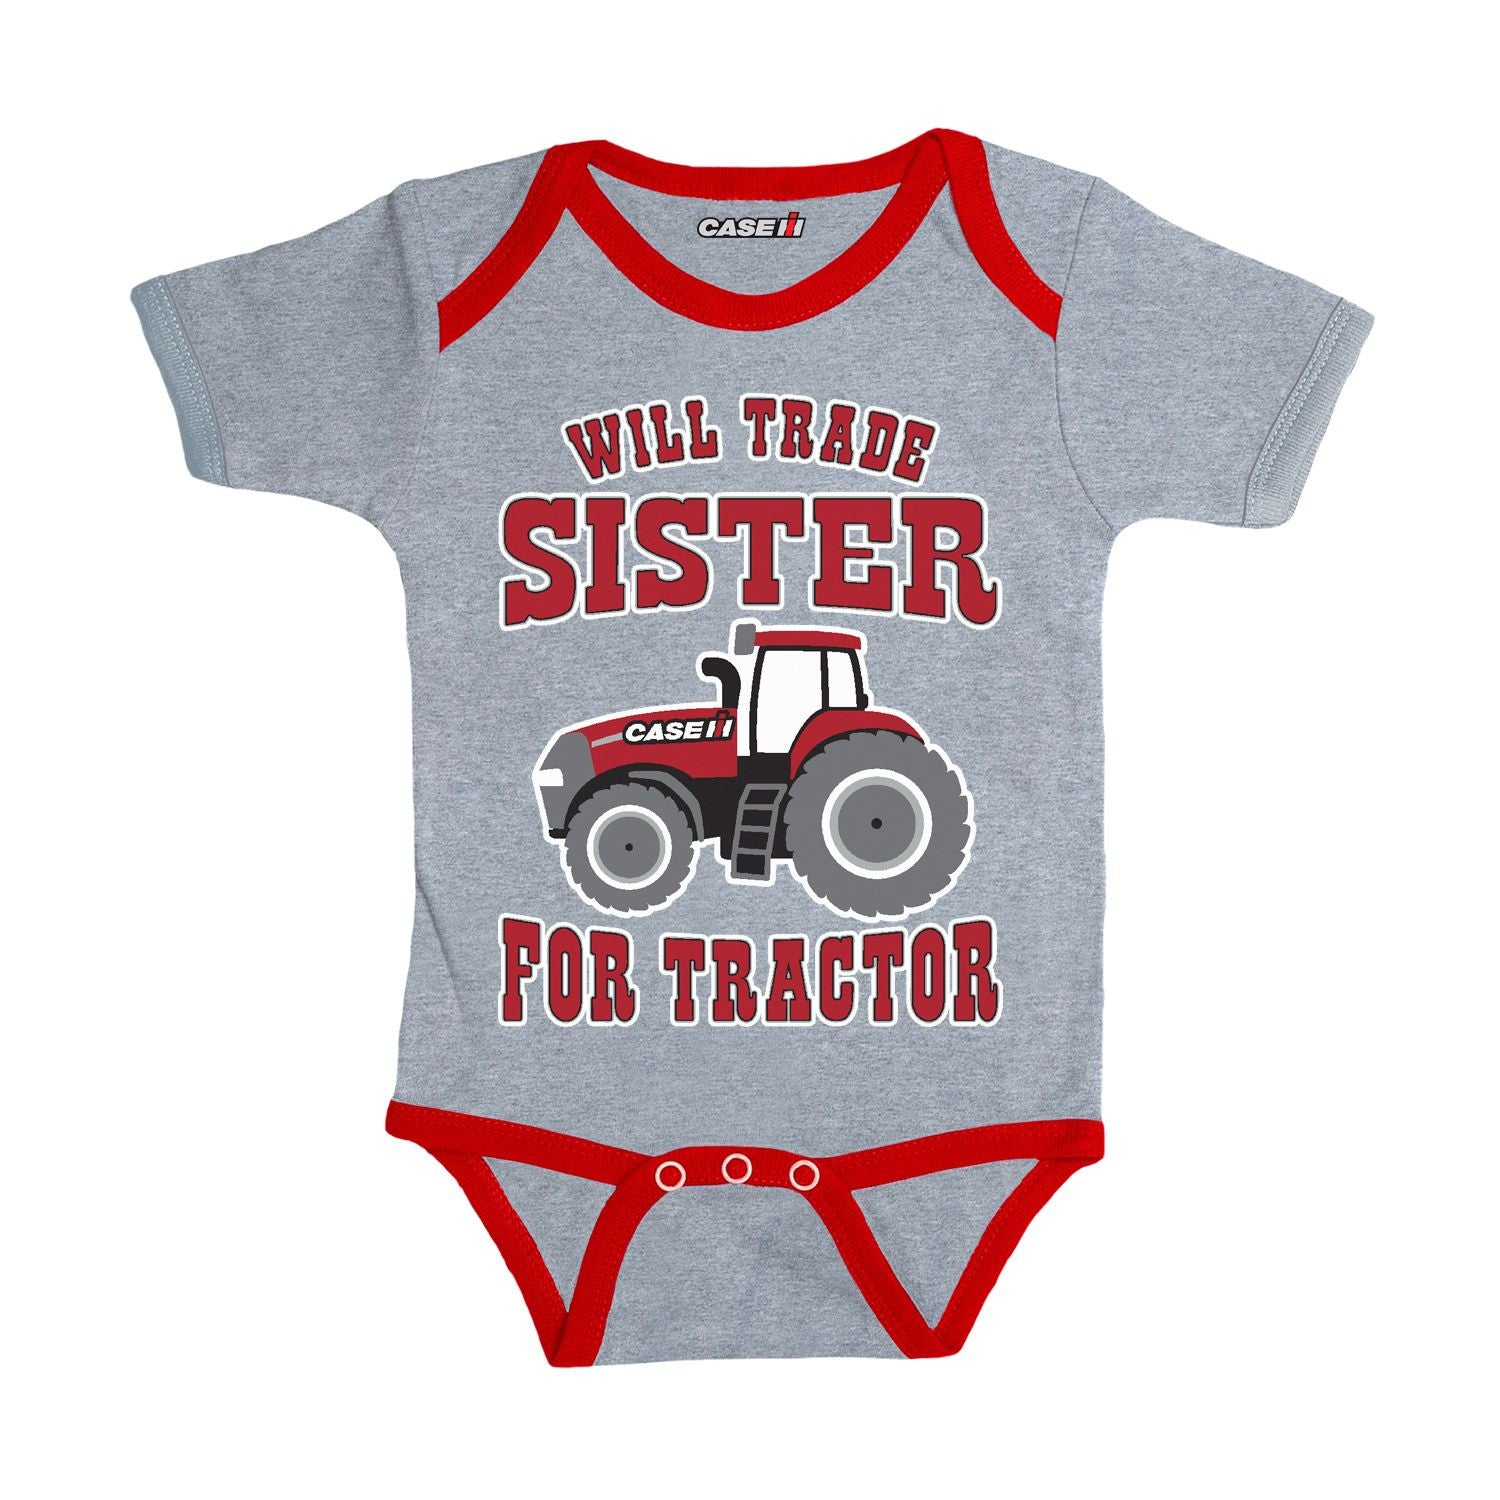 Case IH Will Trade Sister Infant Tractor Bodysuit - tractorup2